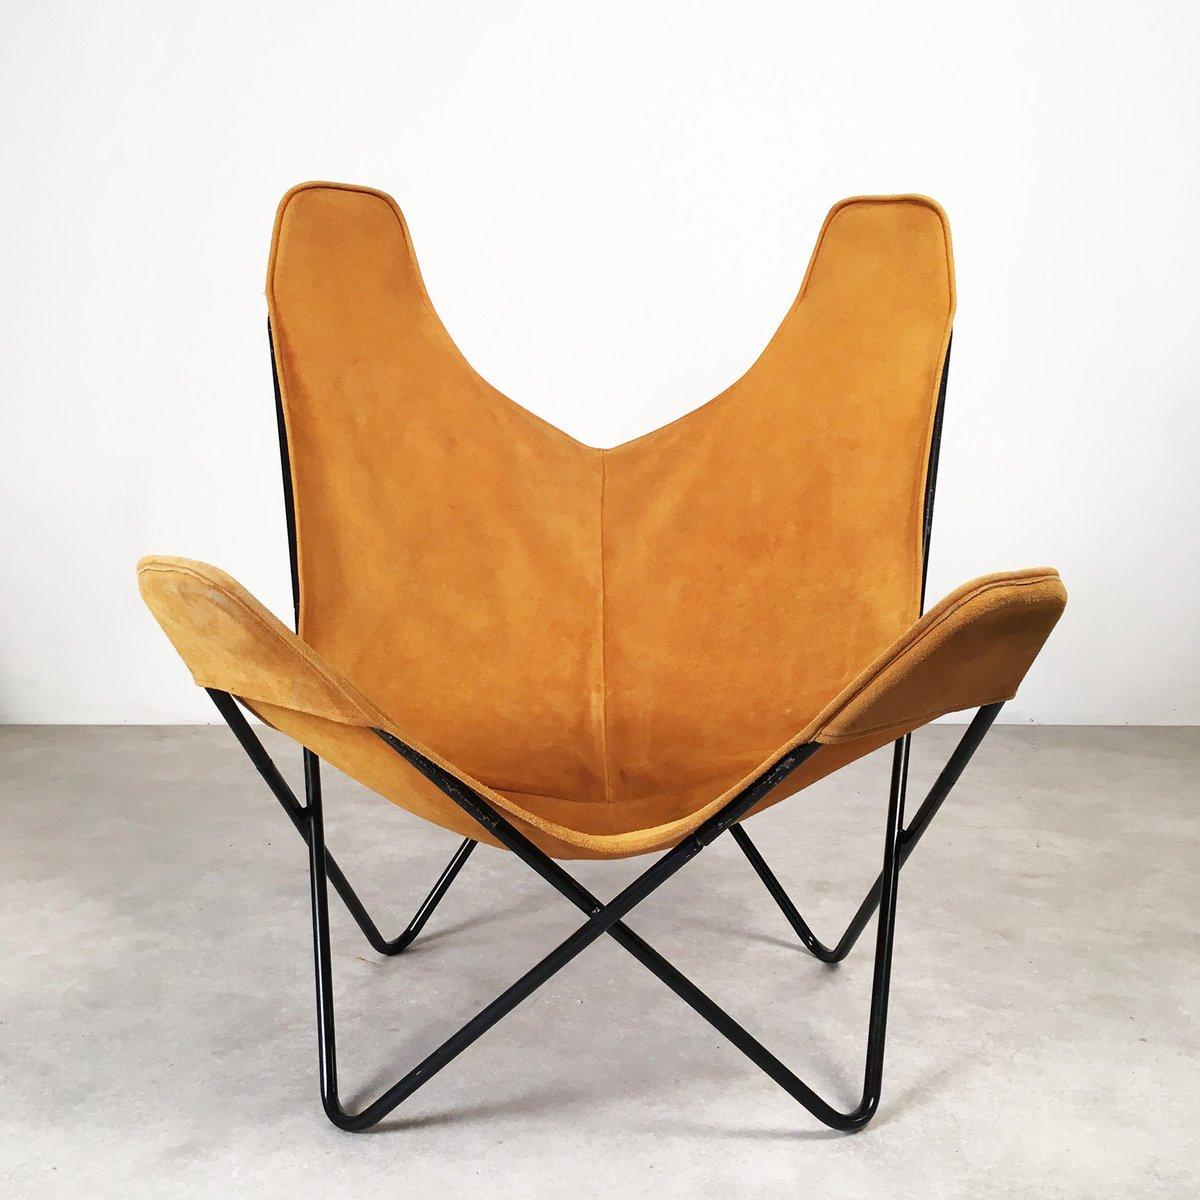 butterfly chair by jorge hardoy ferrari for knoll 1950s for sale at pamono. Black Bedroom Furniture Sets. Home Design Ideas